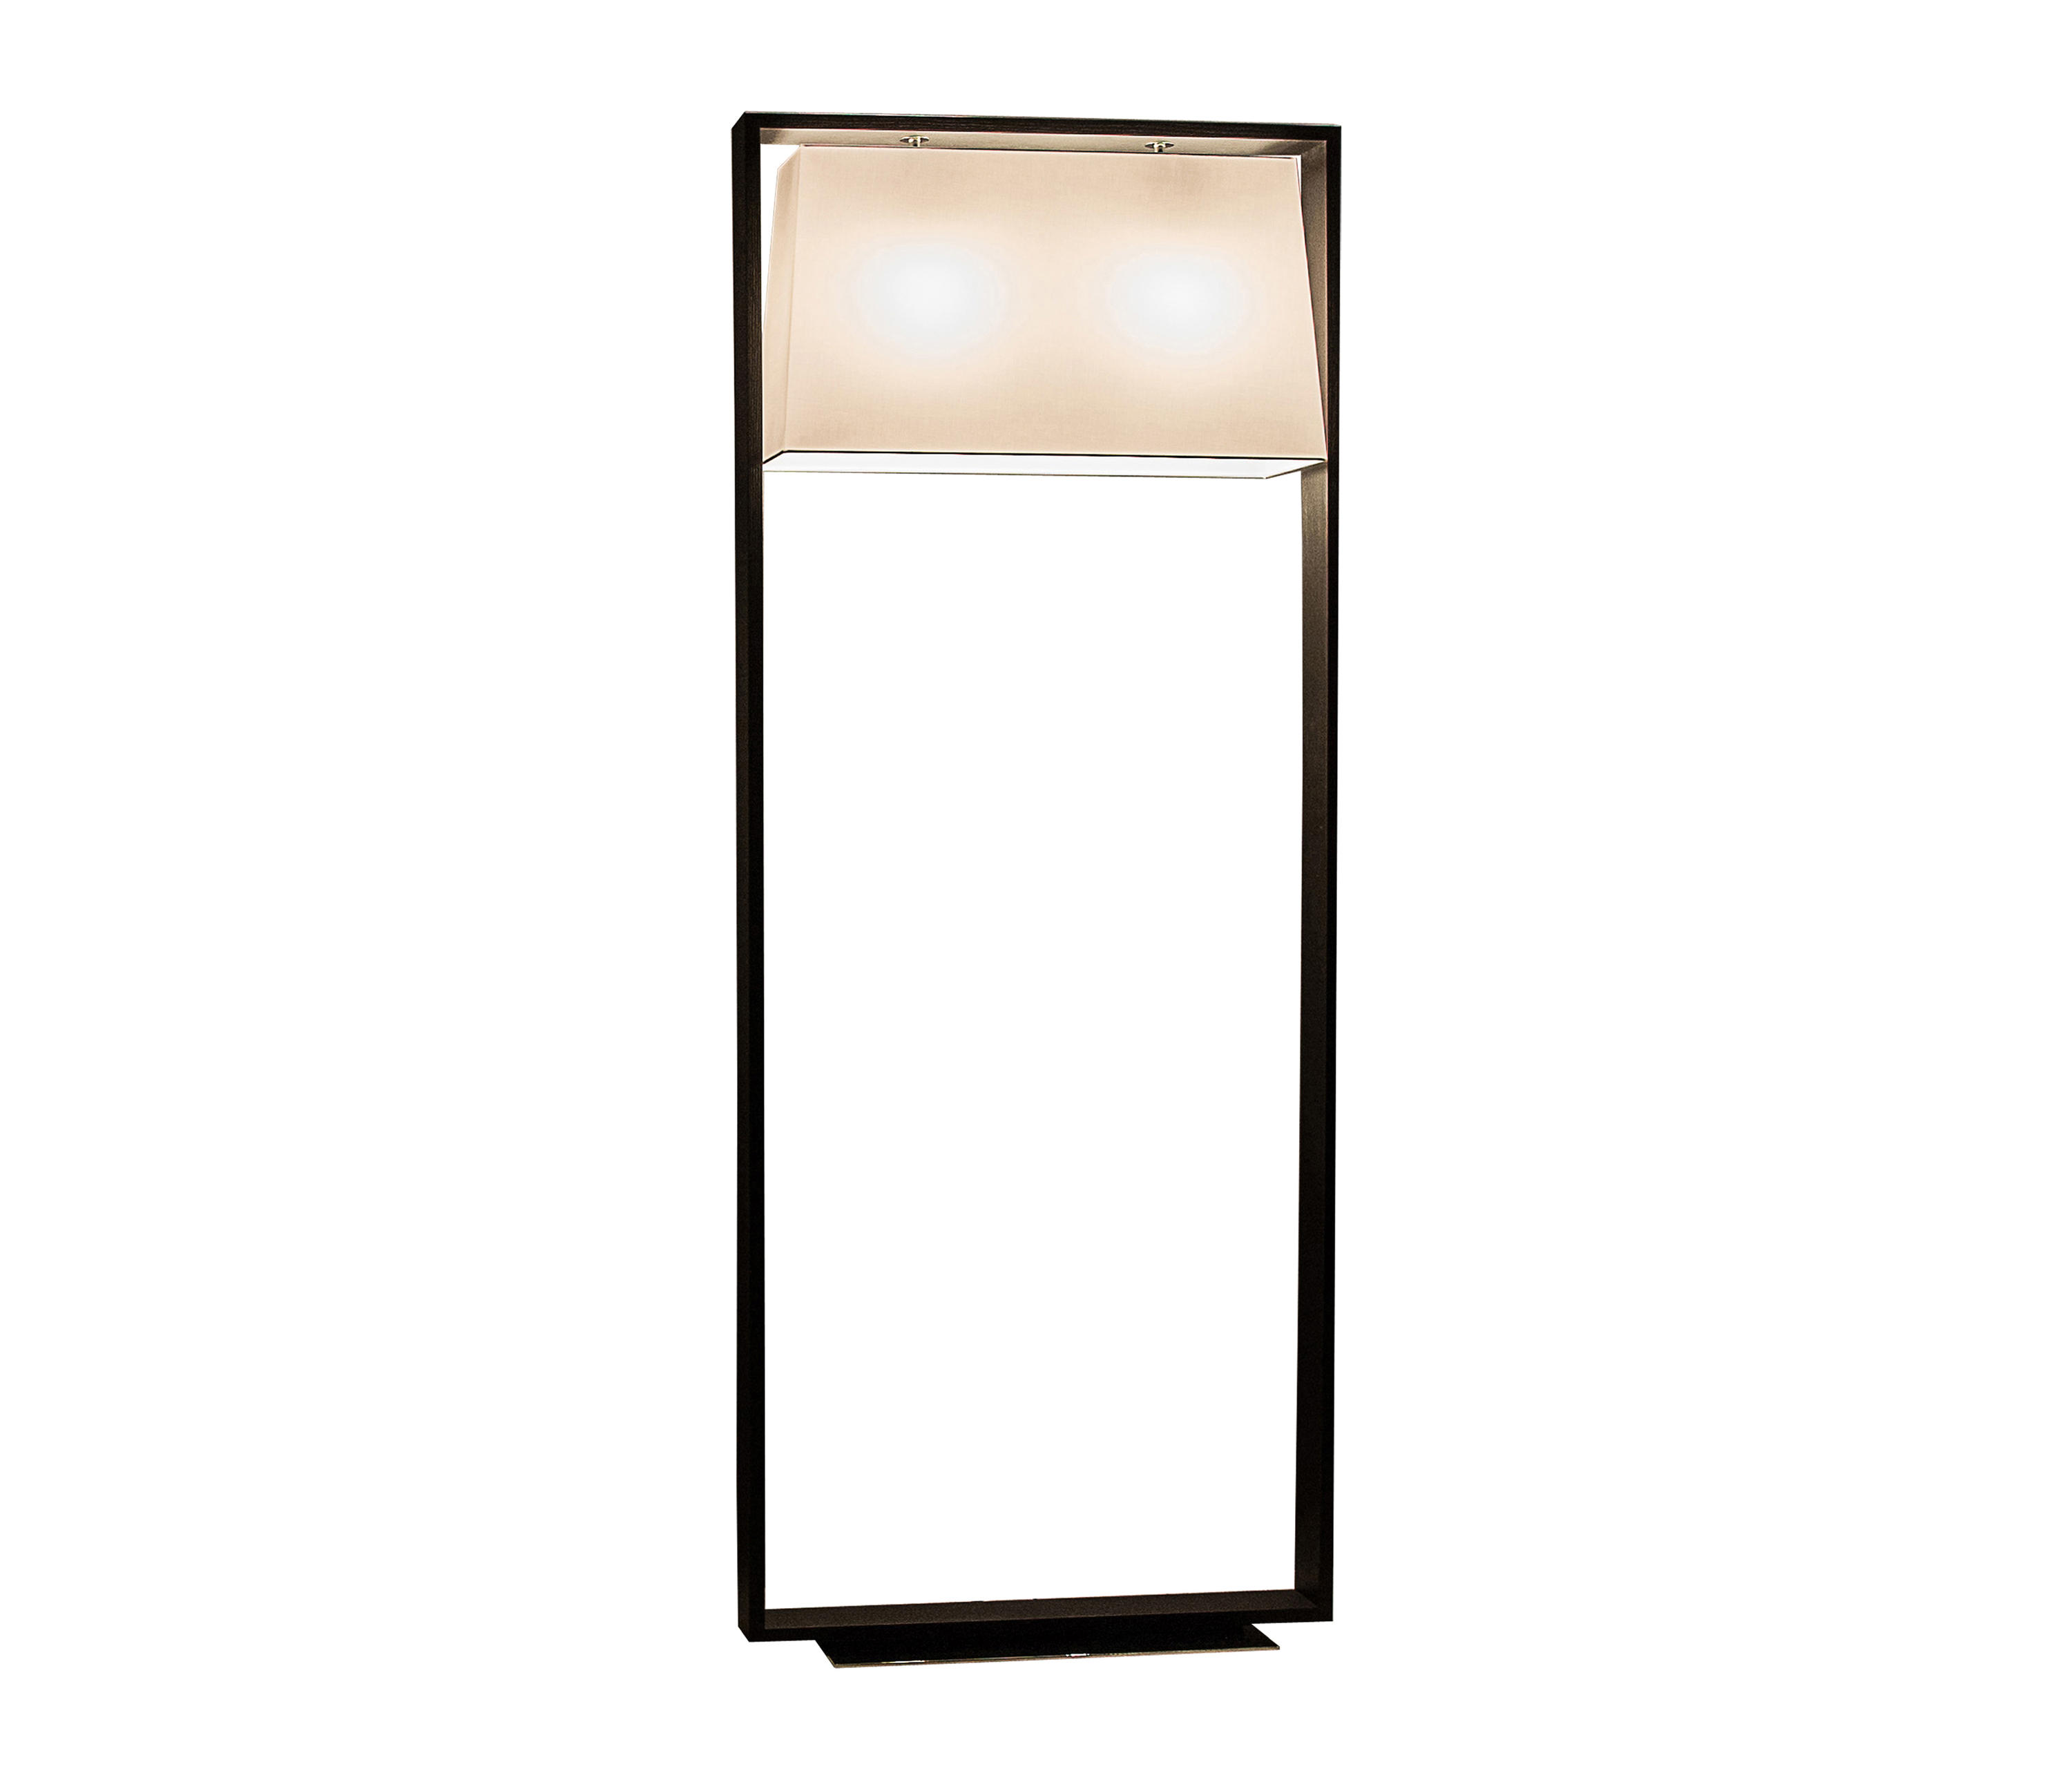 FRAME FL MR - Free-standing lights from Contardi Lighting | Architonic